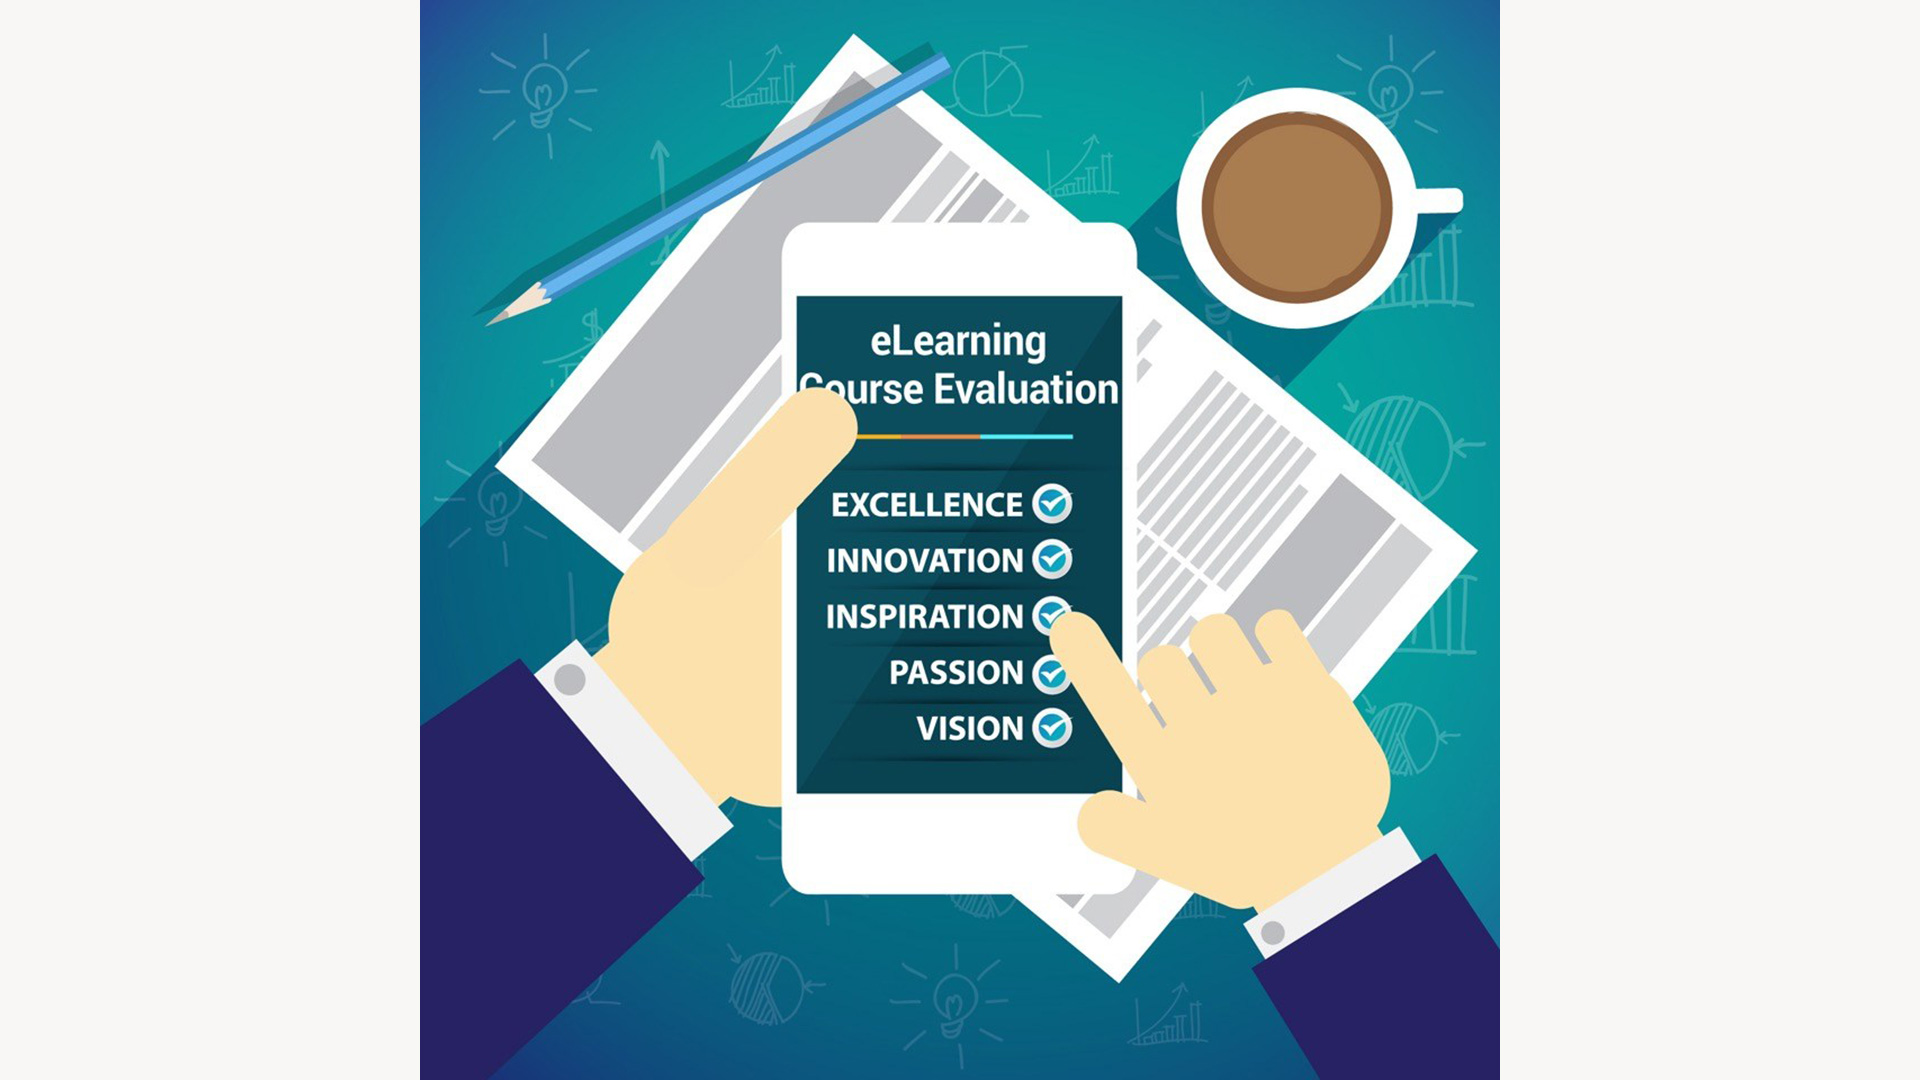 eLearning Course Evaluation